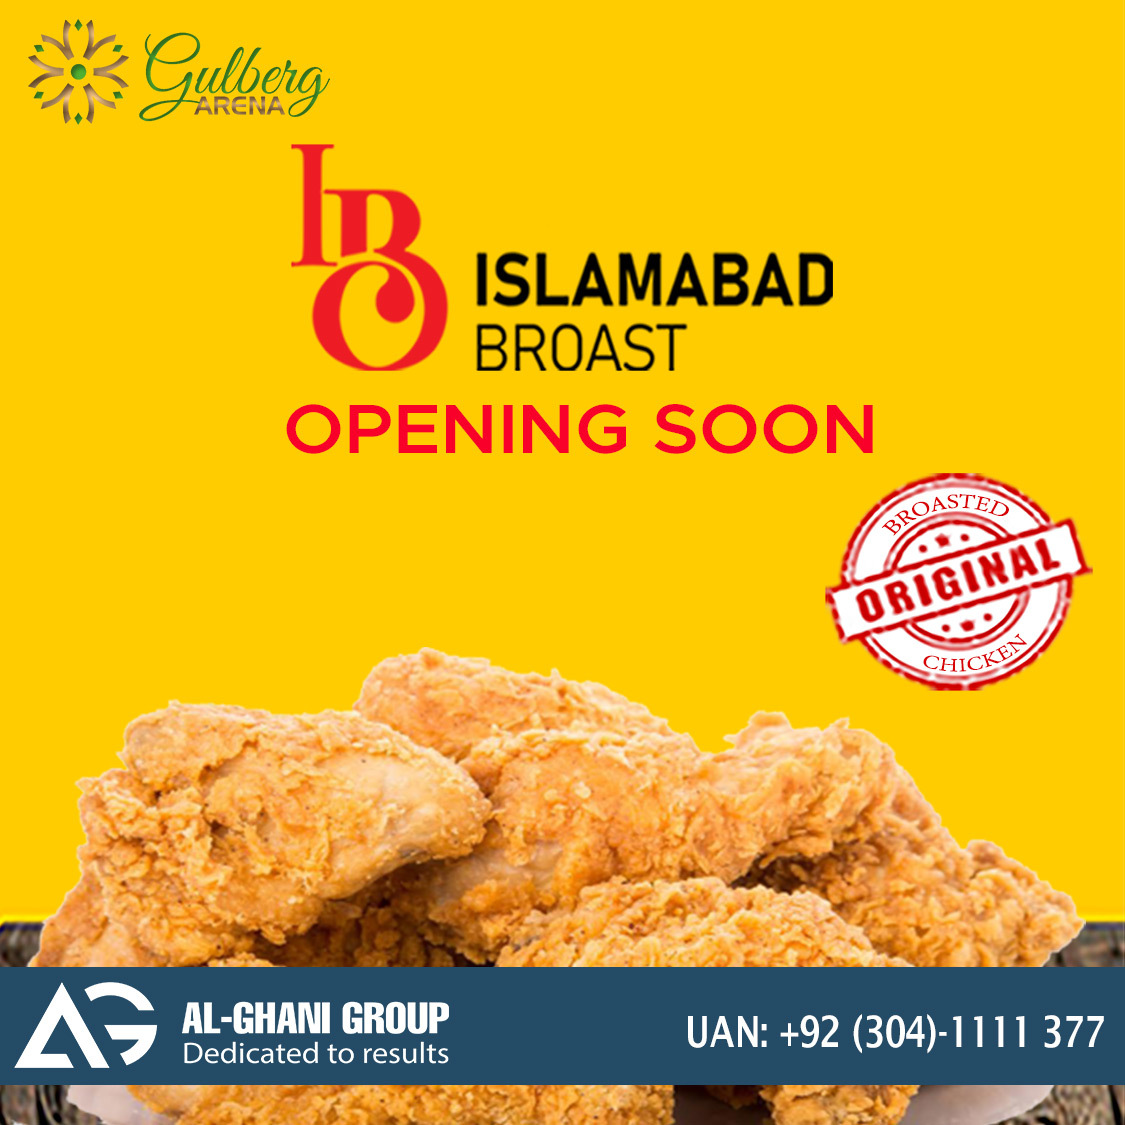 Islamabad Broast outlet in gulberg arena food court at Gulberg Greens Islamabad